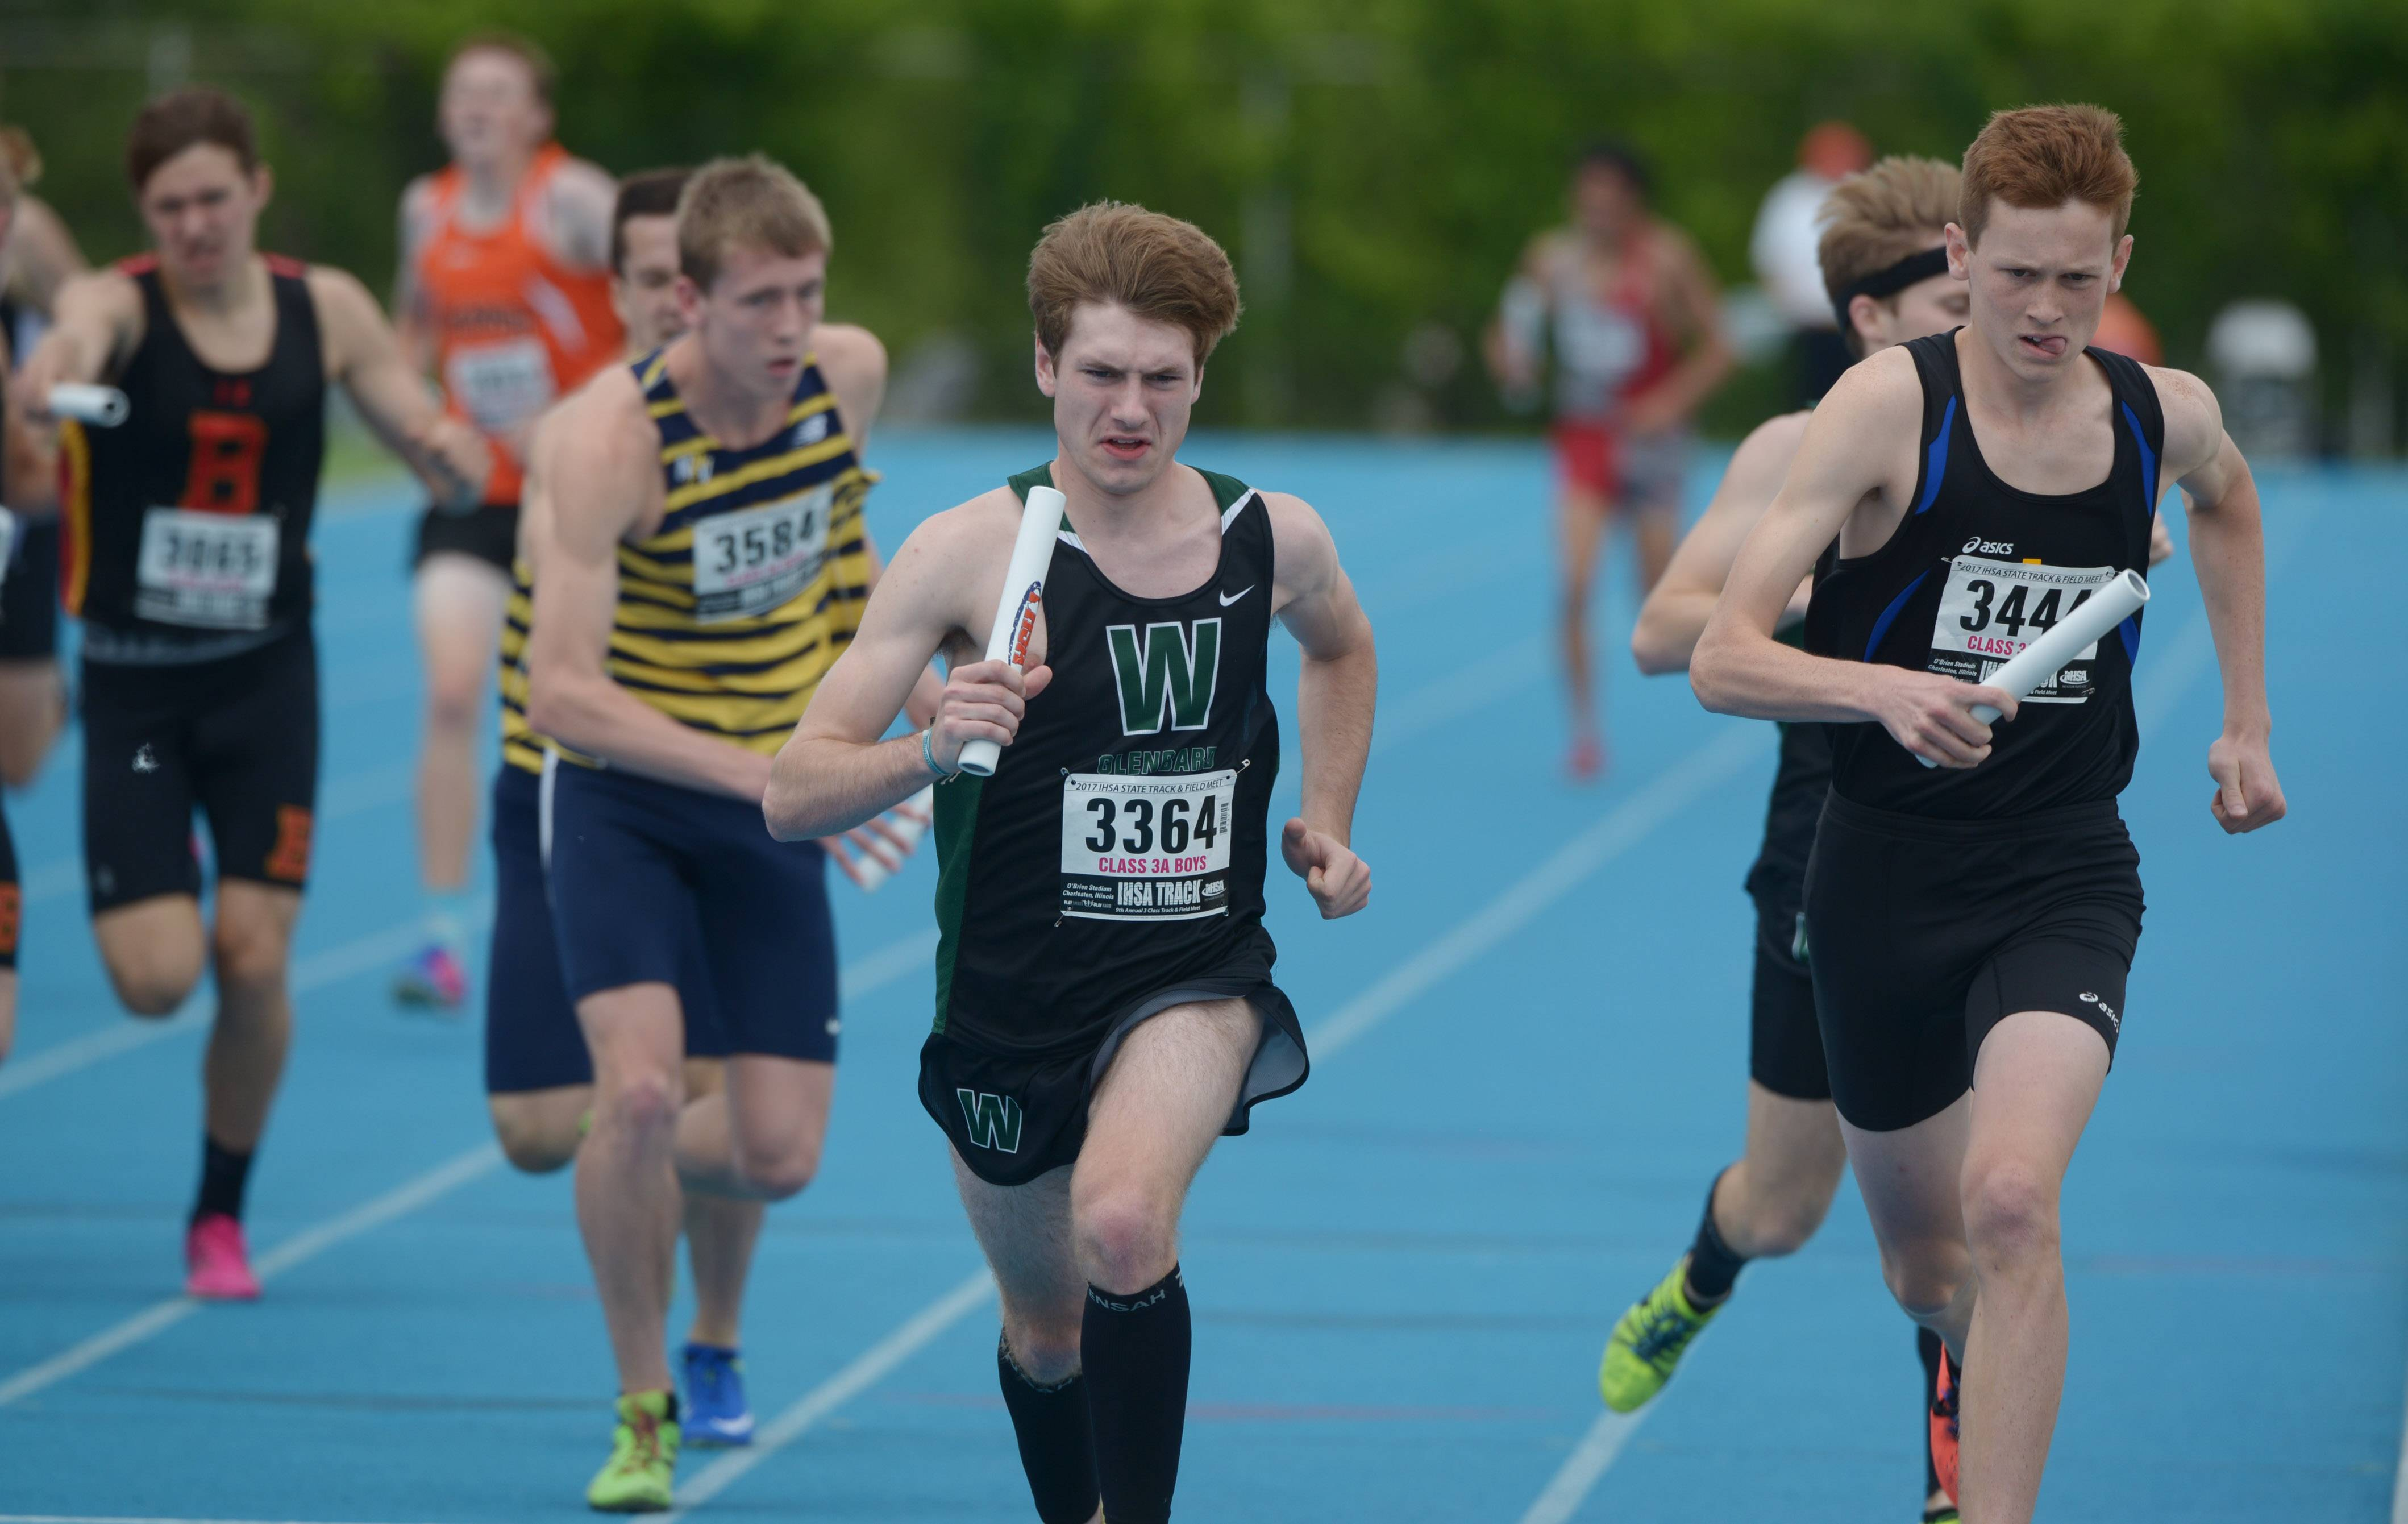 Glenbard West's Kyle Rogus (3364) runs in the class 3A 3,200 meter relay during the boys state track and field preliminaries at Eastern Illinois University in Charleston Friday.